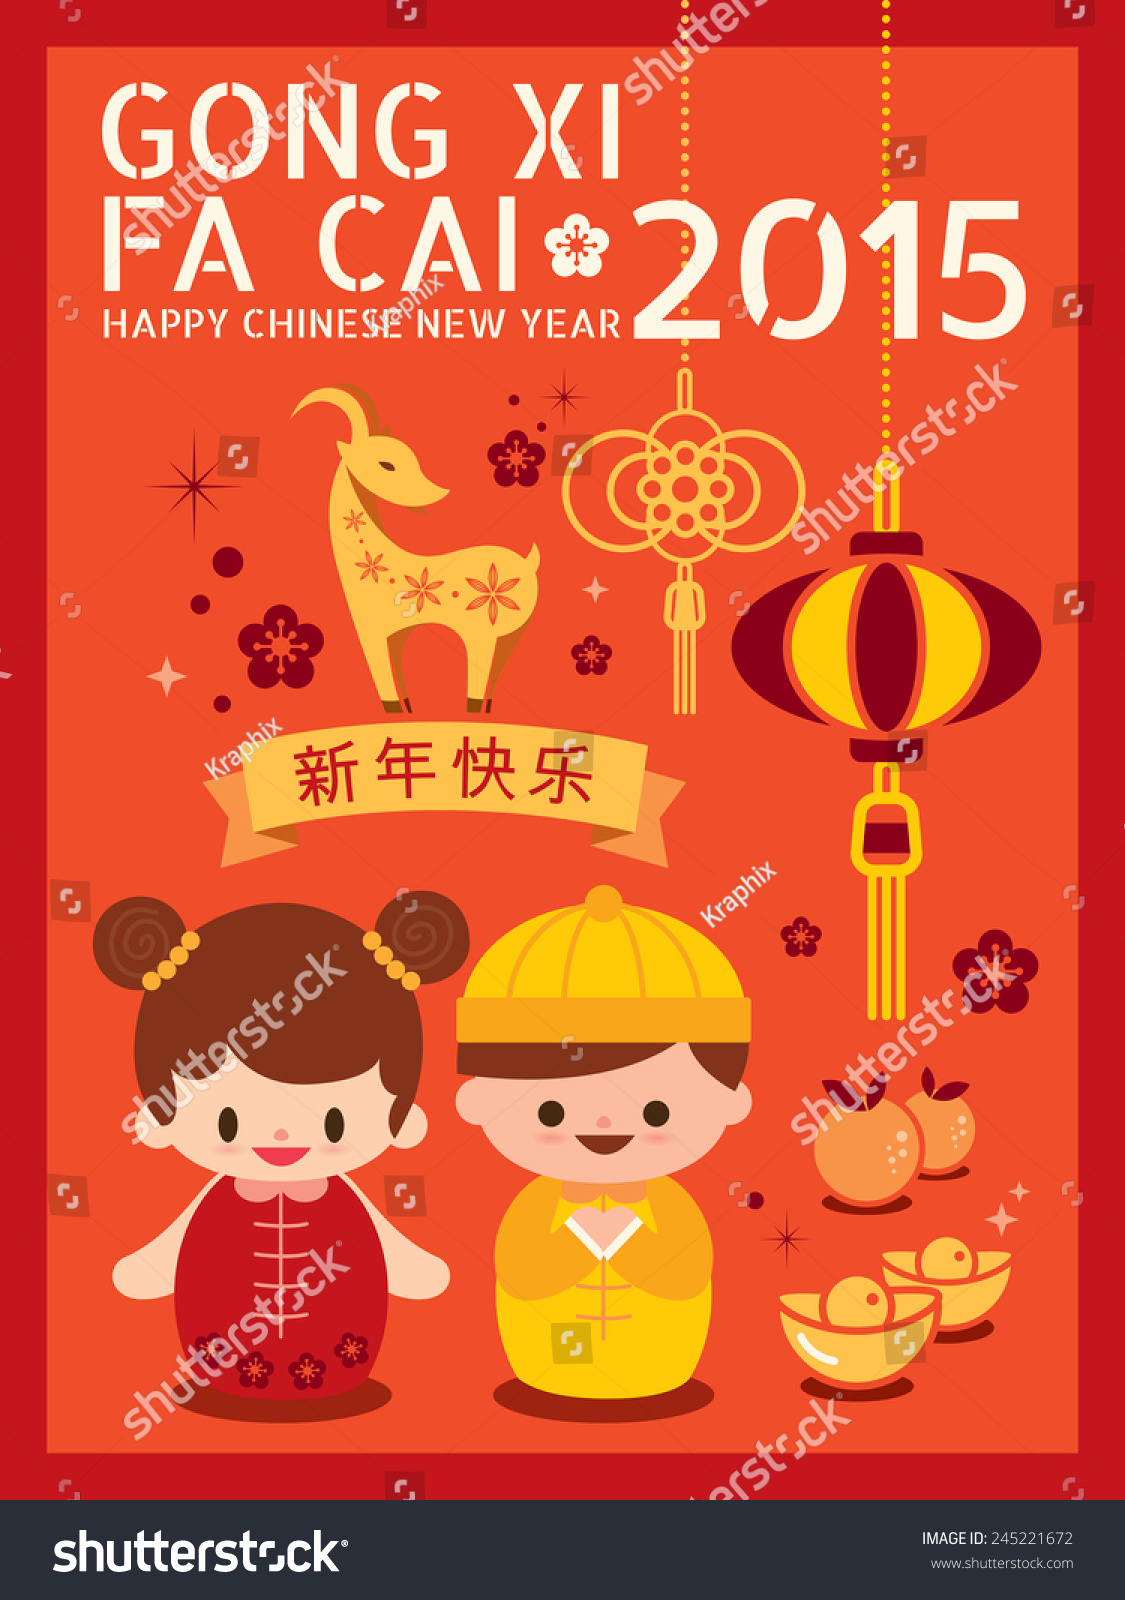 chinese new year of the goat 2015 design elements with gong xi fa cai